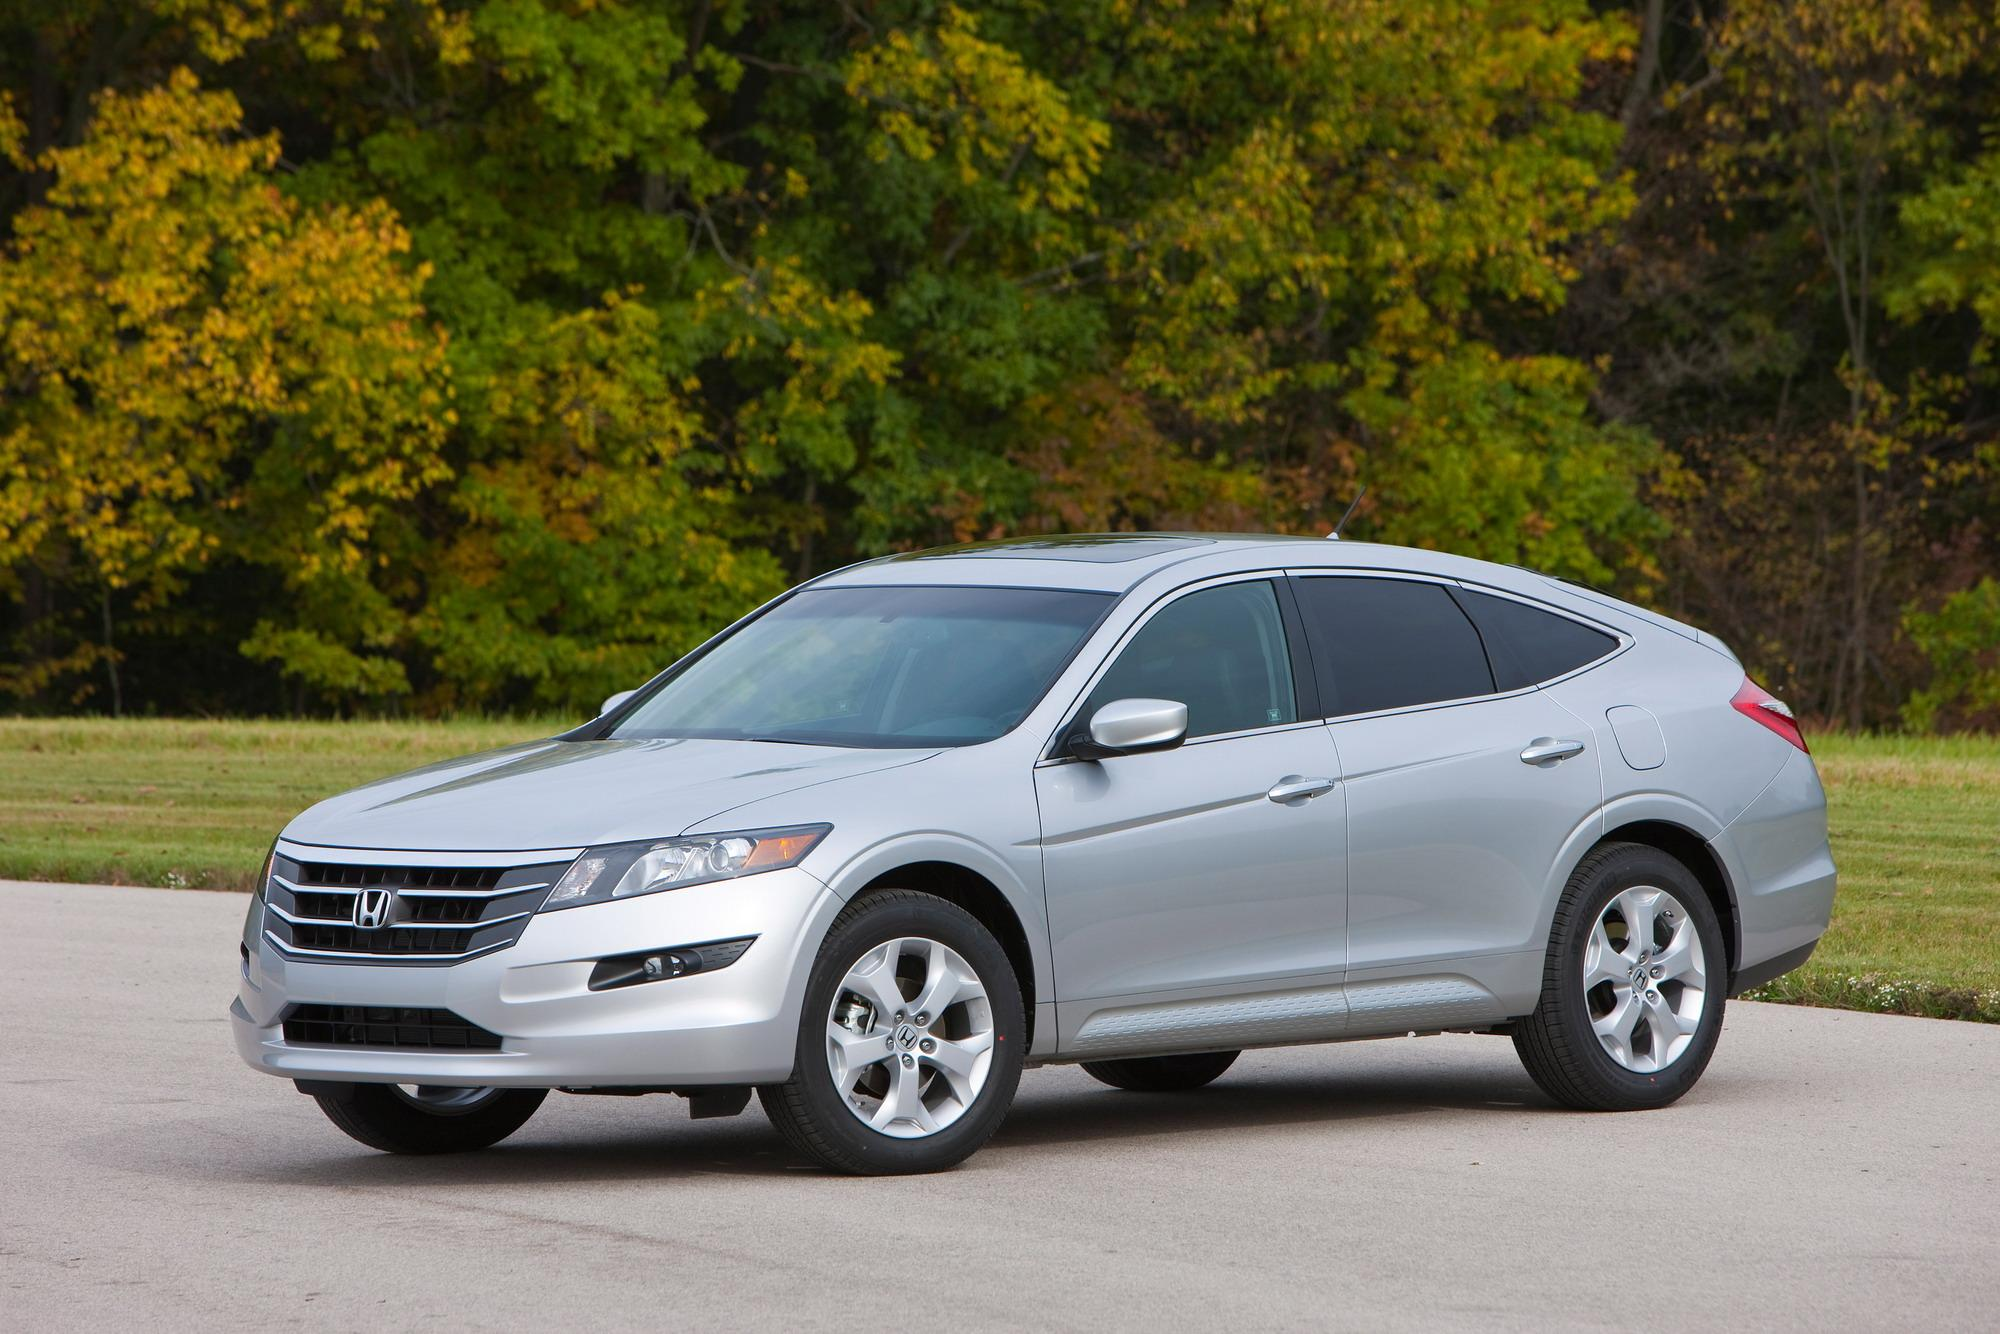 2012 - 2013 Honda Crosstour | Top Speed. »